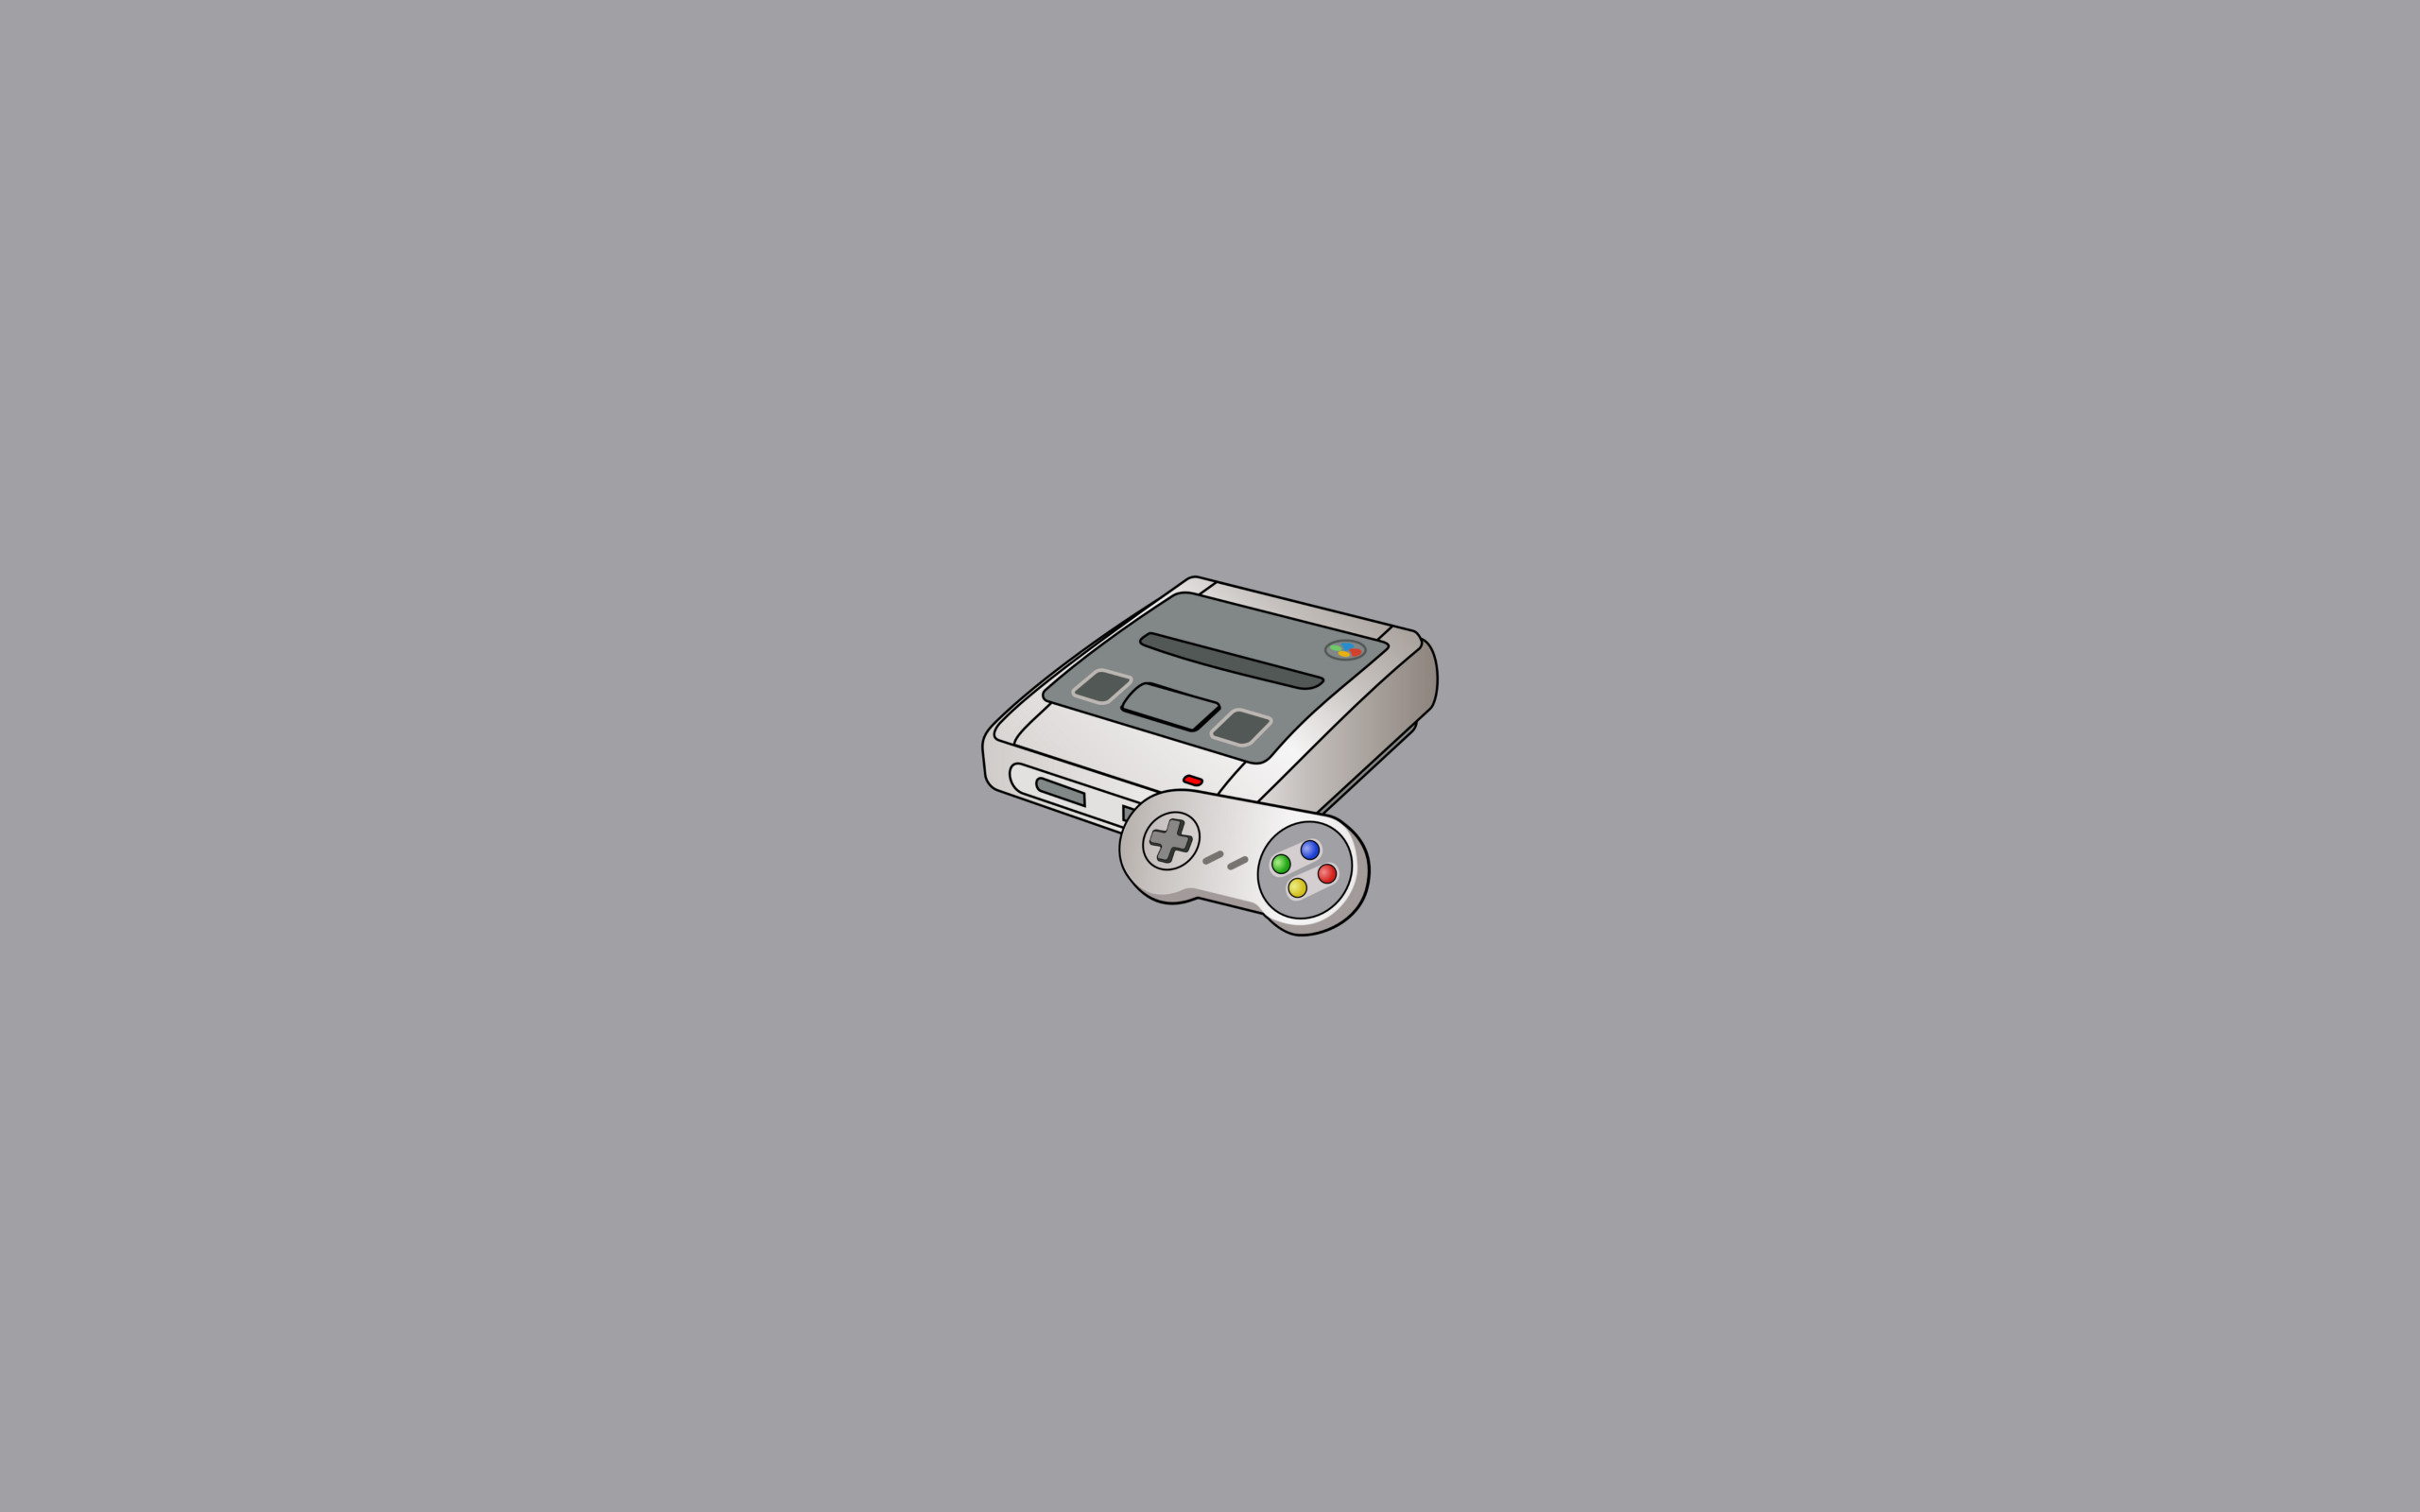 … SNES Console Drawing – by Kroontje